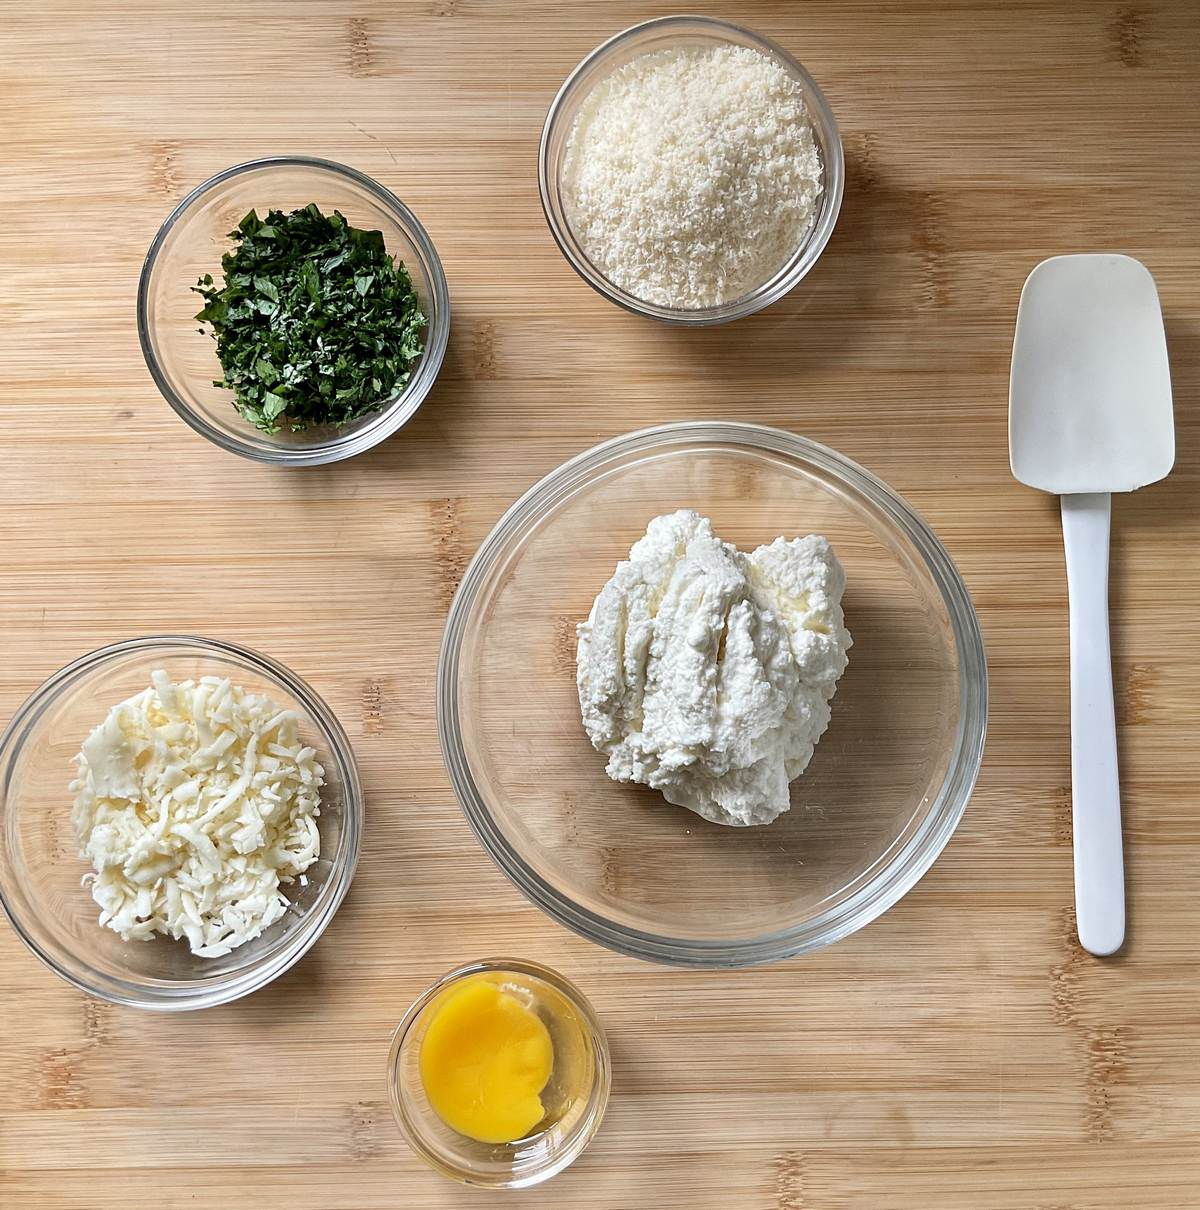 Ingredients to make ricotta filling in separate bowls.